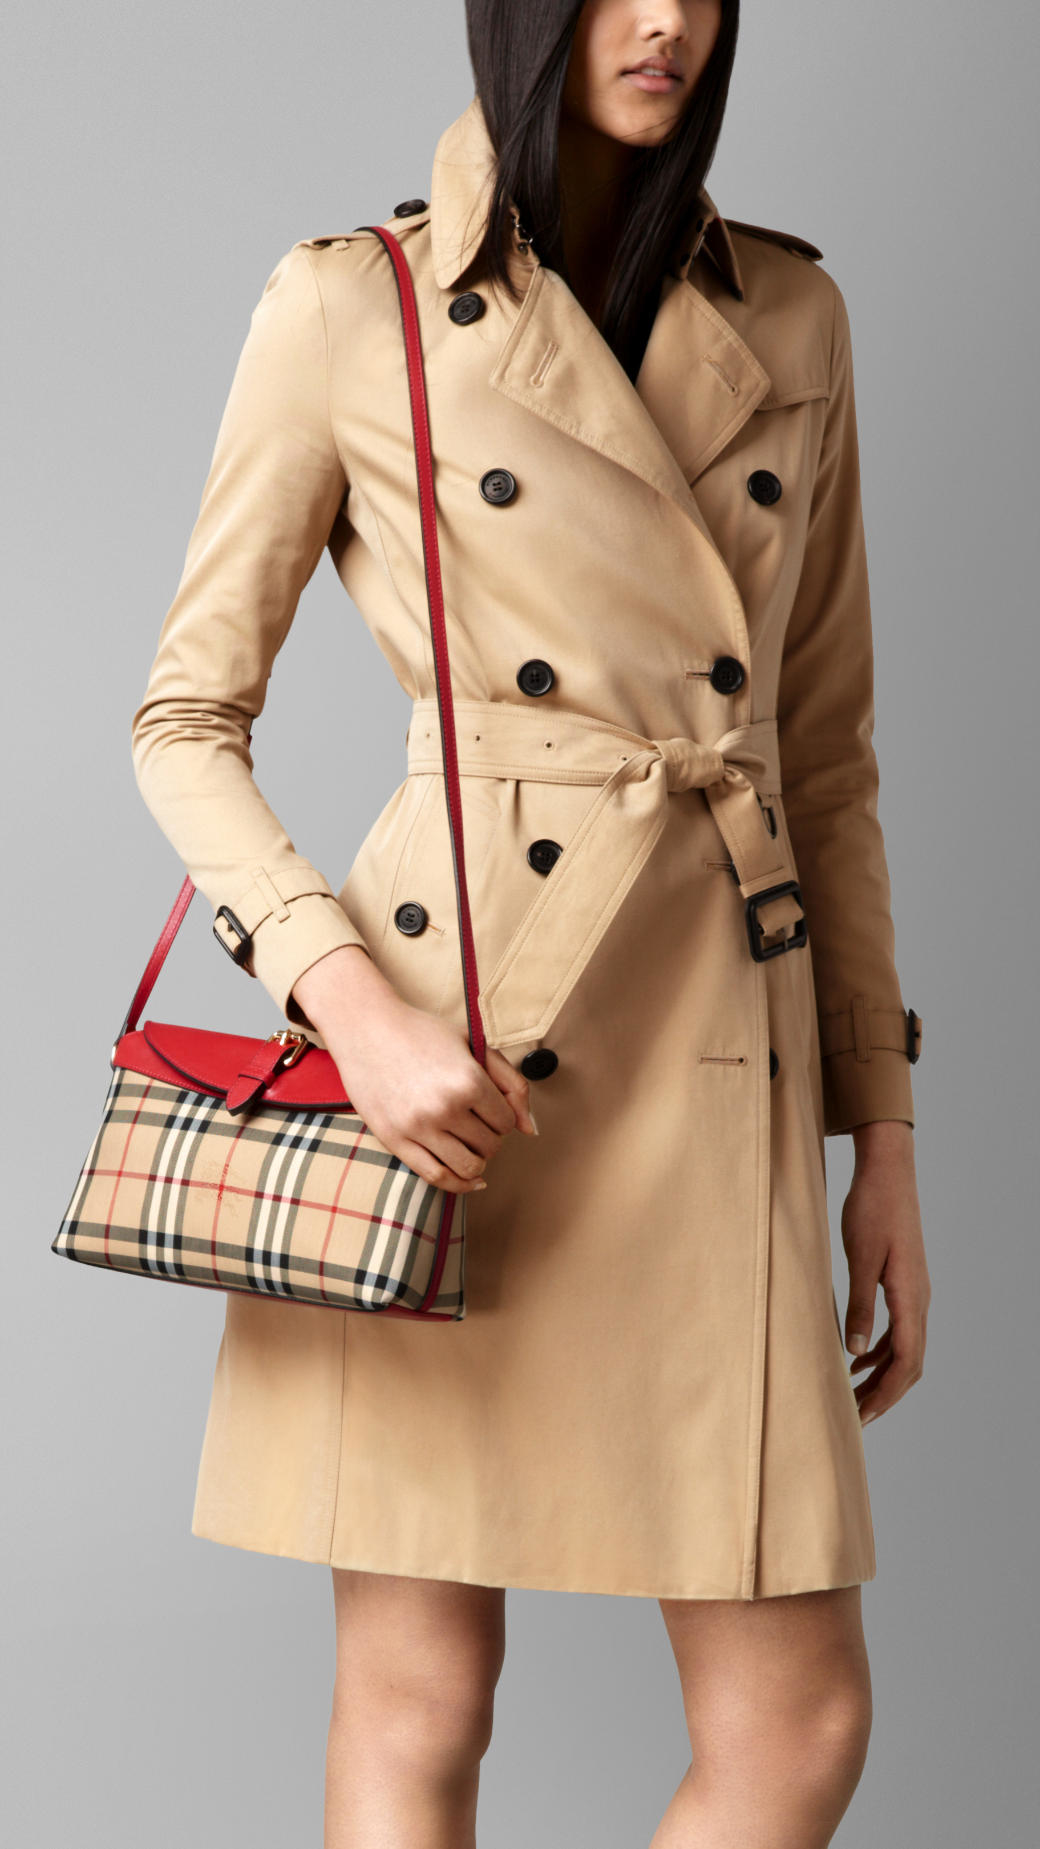 445919045c68 Lyst - Burberry Small Horseferry Check Clutch Bag Honey parade Red in  Natural